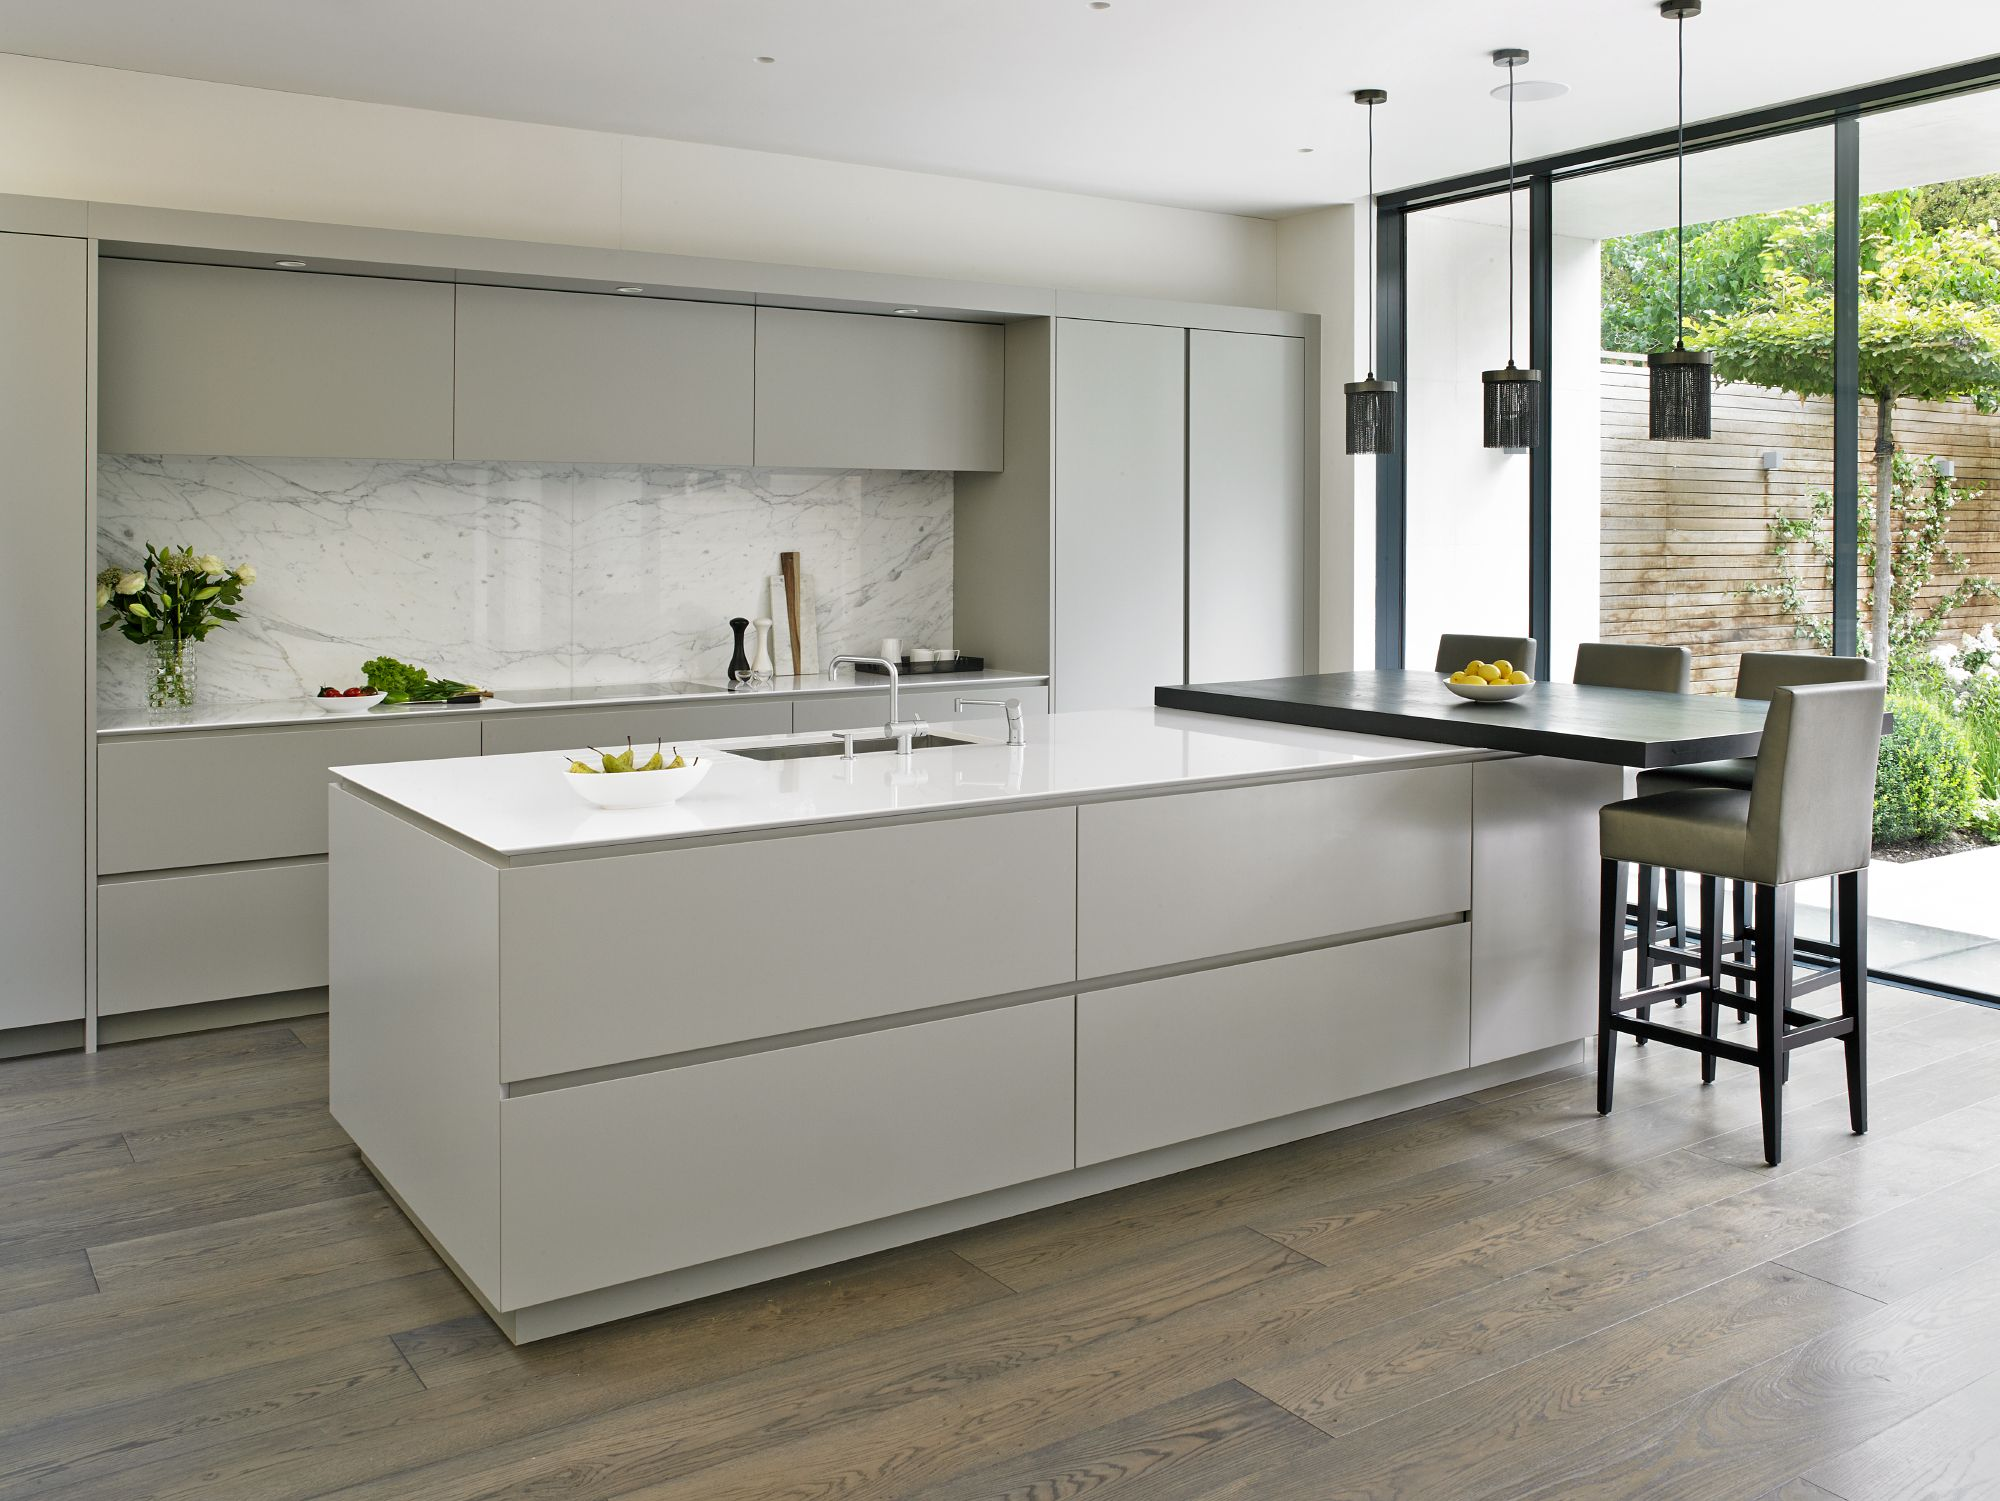 Wandsworth Family Kitchen - Bespoke Kitchens, SW London ...